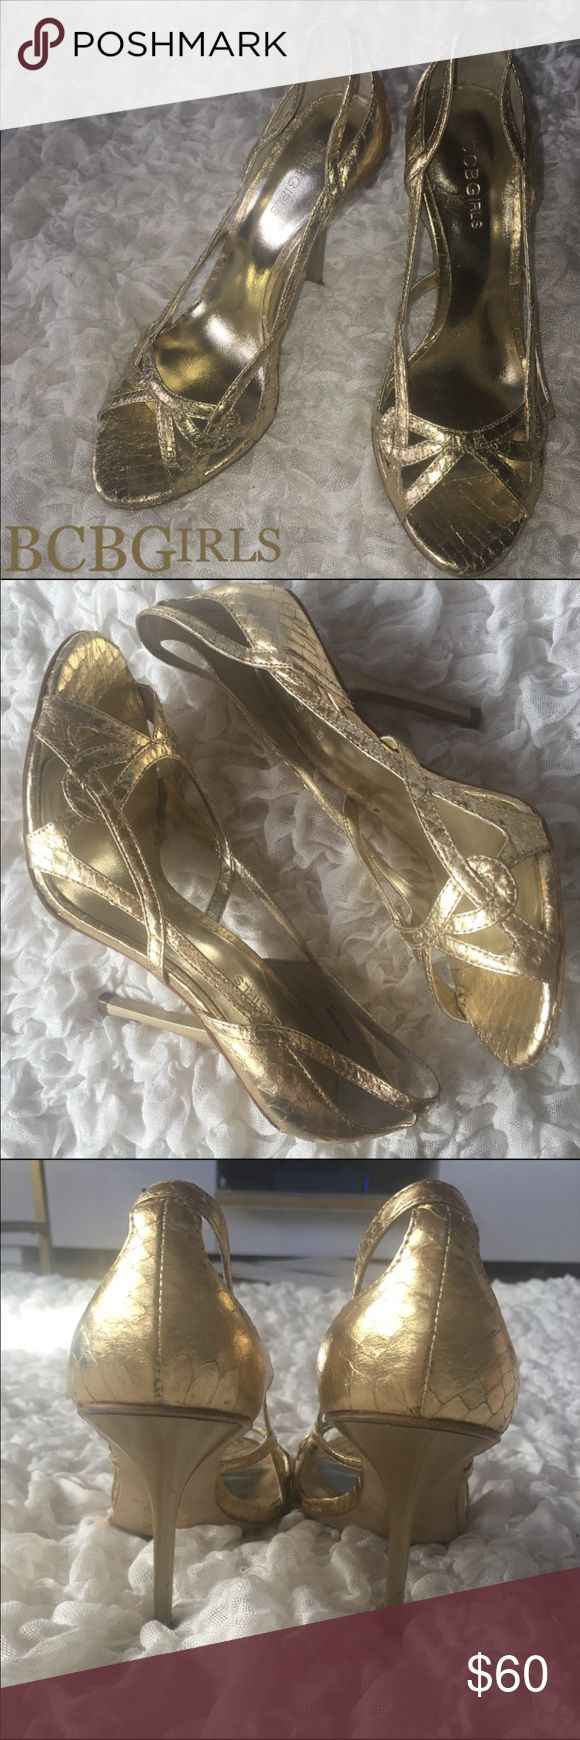 """BCBGIRLS Metallic Gold Sandal Heels 6.5 Metallic Gold Scale faux animal skin/ snake skin/ alligator skin leather. Peep toe Sandal Heels. Very classy, simple. Gorgeous. Dress up with a white or black gown or dress down with a pant suit!  Size 6.5 4"""" heel   Retail $89 Brisette #11 BCBGirls Shoes Heels"""